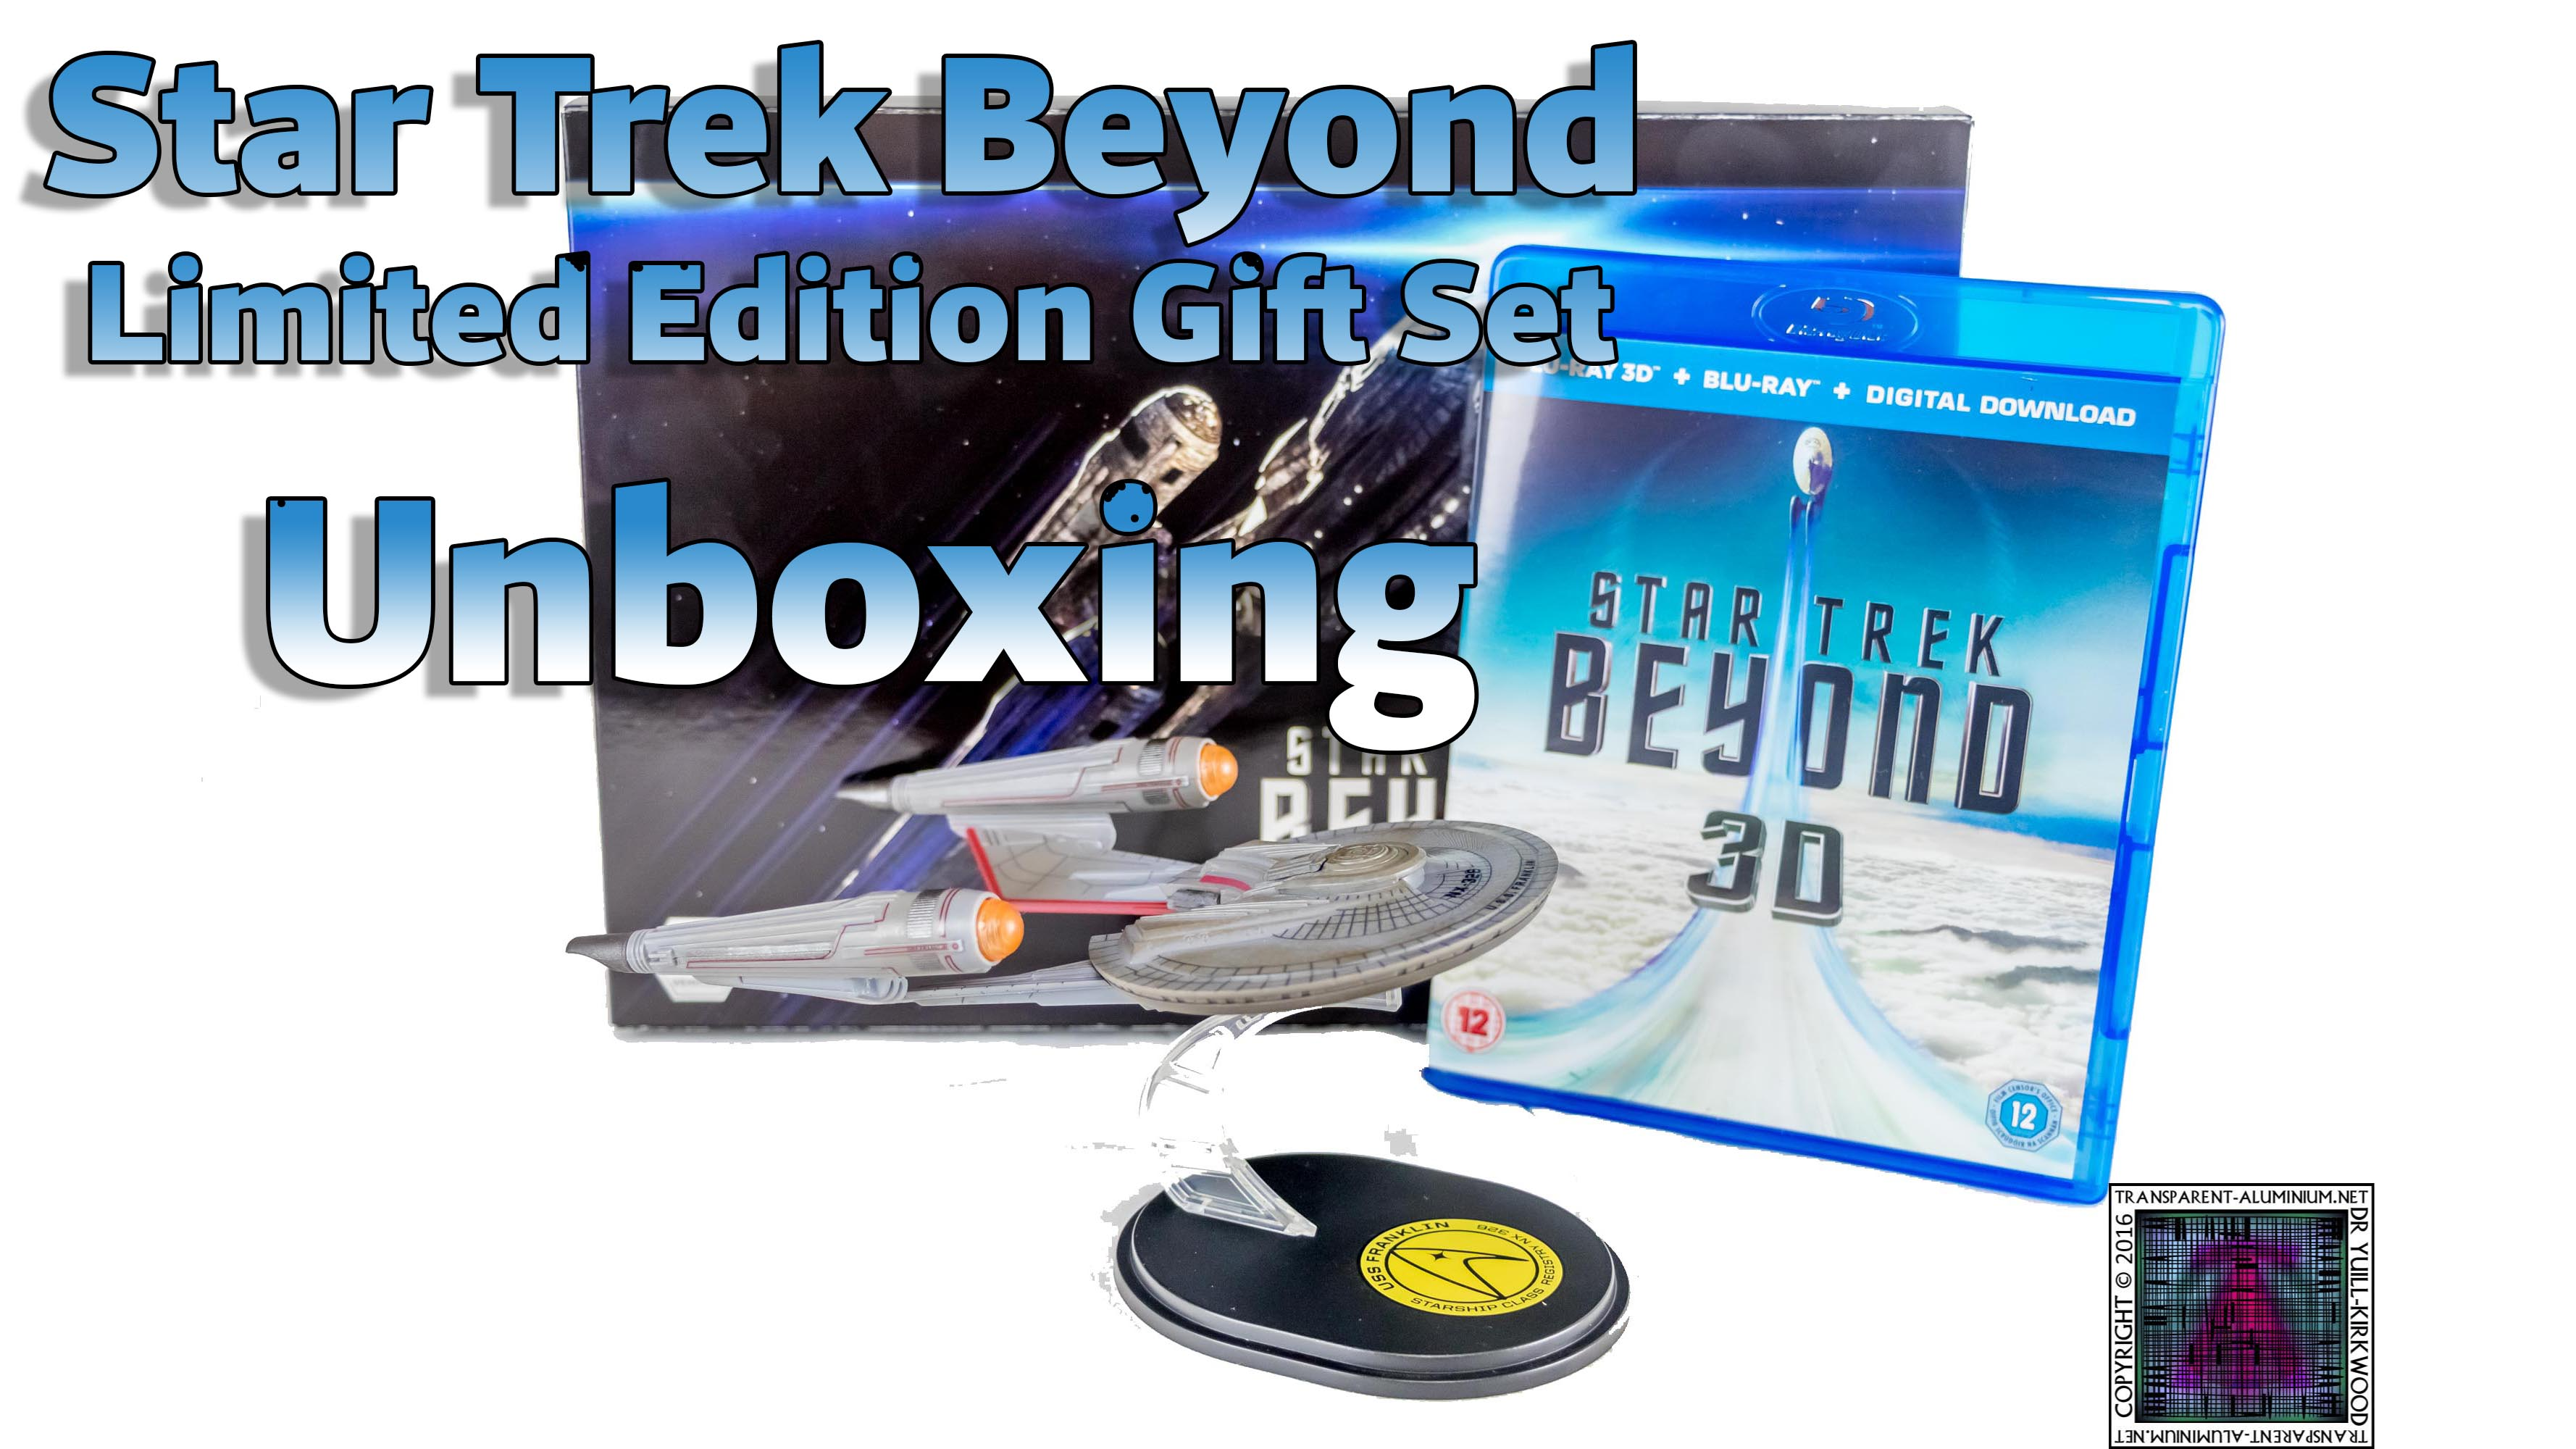 Star Trek Beyond Limited Edition Gift Set Unboxing thumb